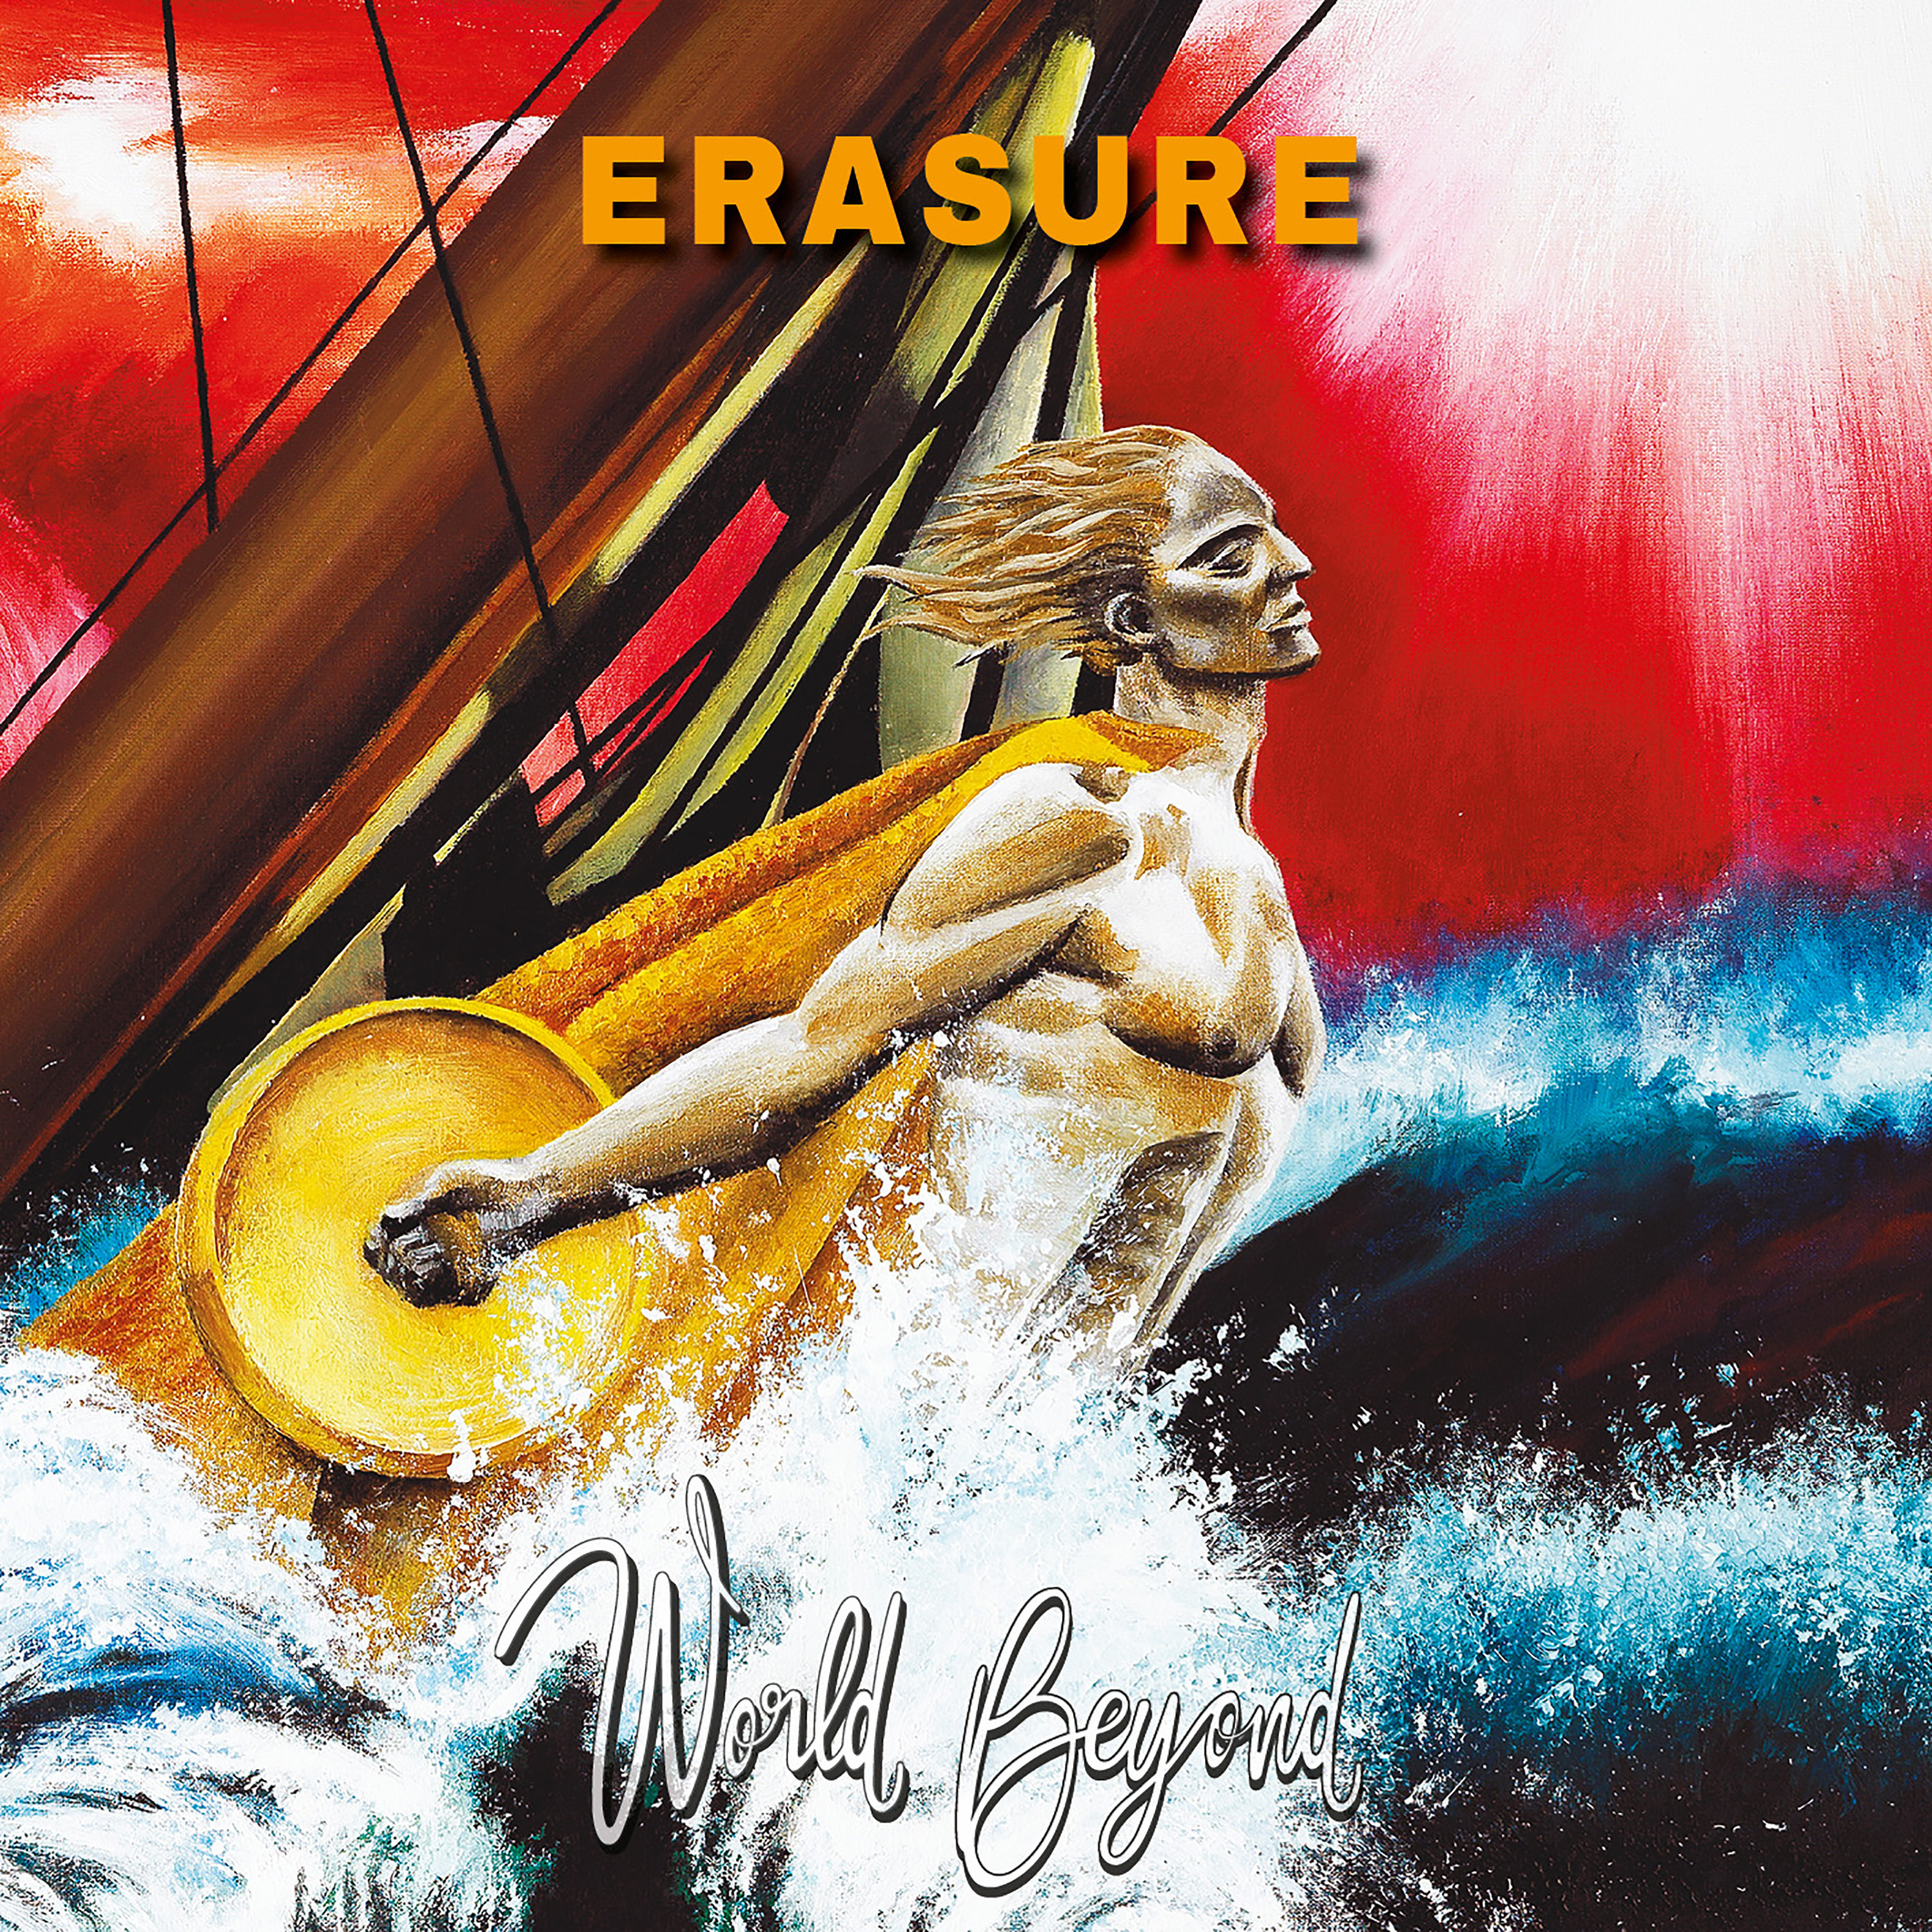 Mute Records • Erasure • New album World Beyond, Classical